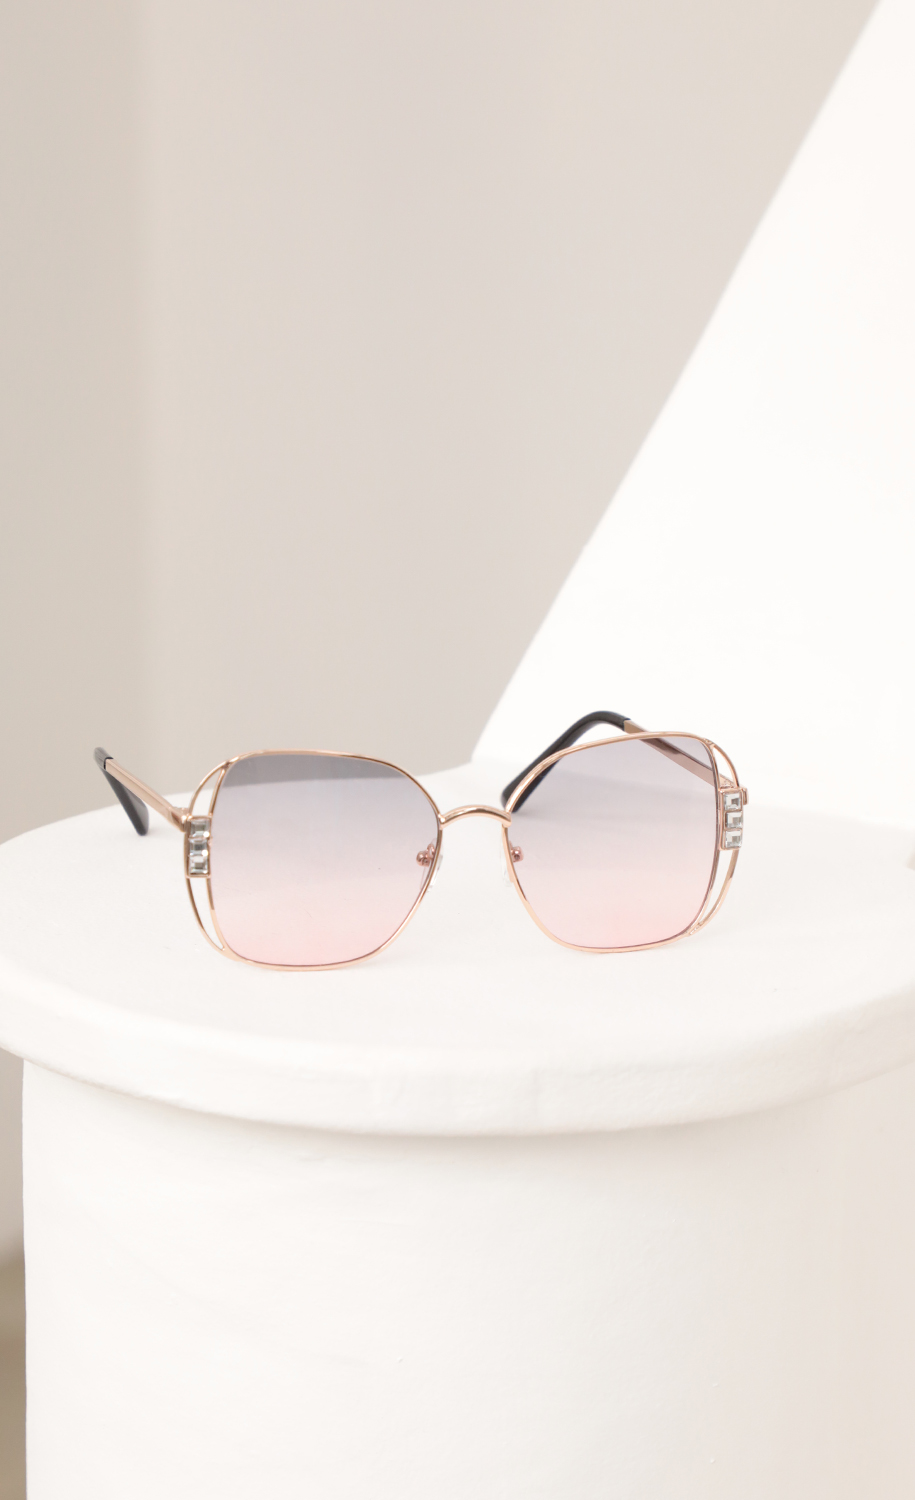 Chloe Retro-Inspired Sunglasses in Pink Ombre